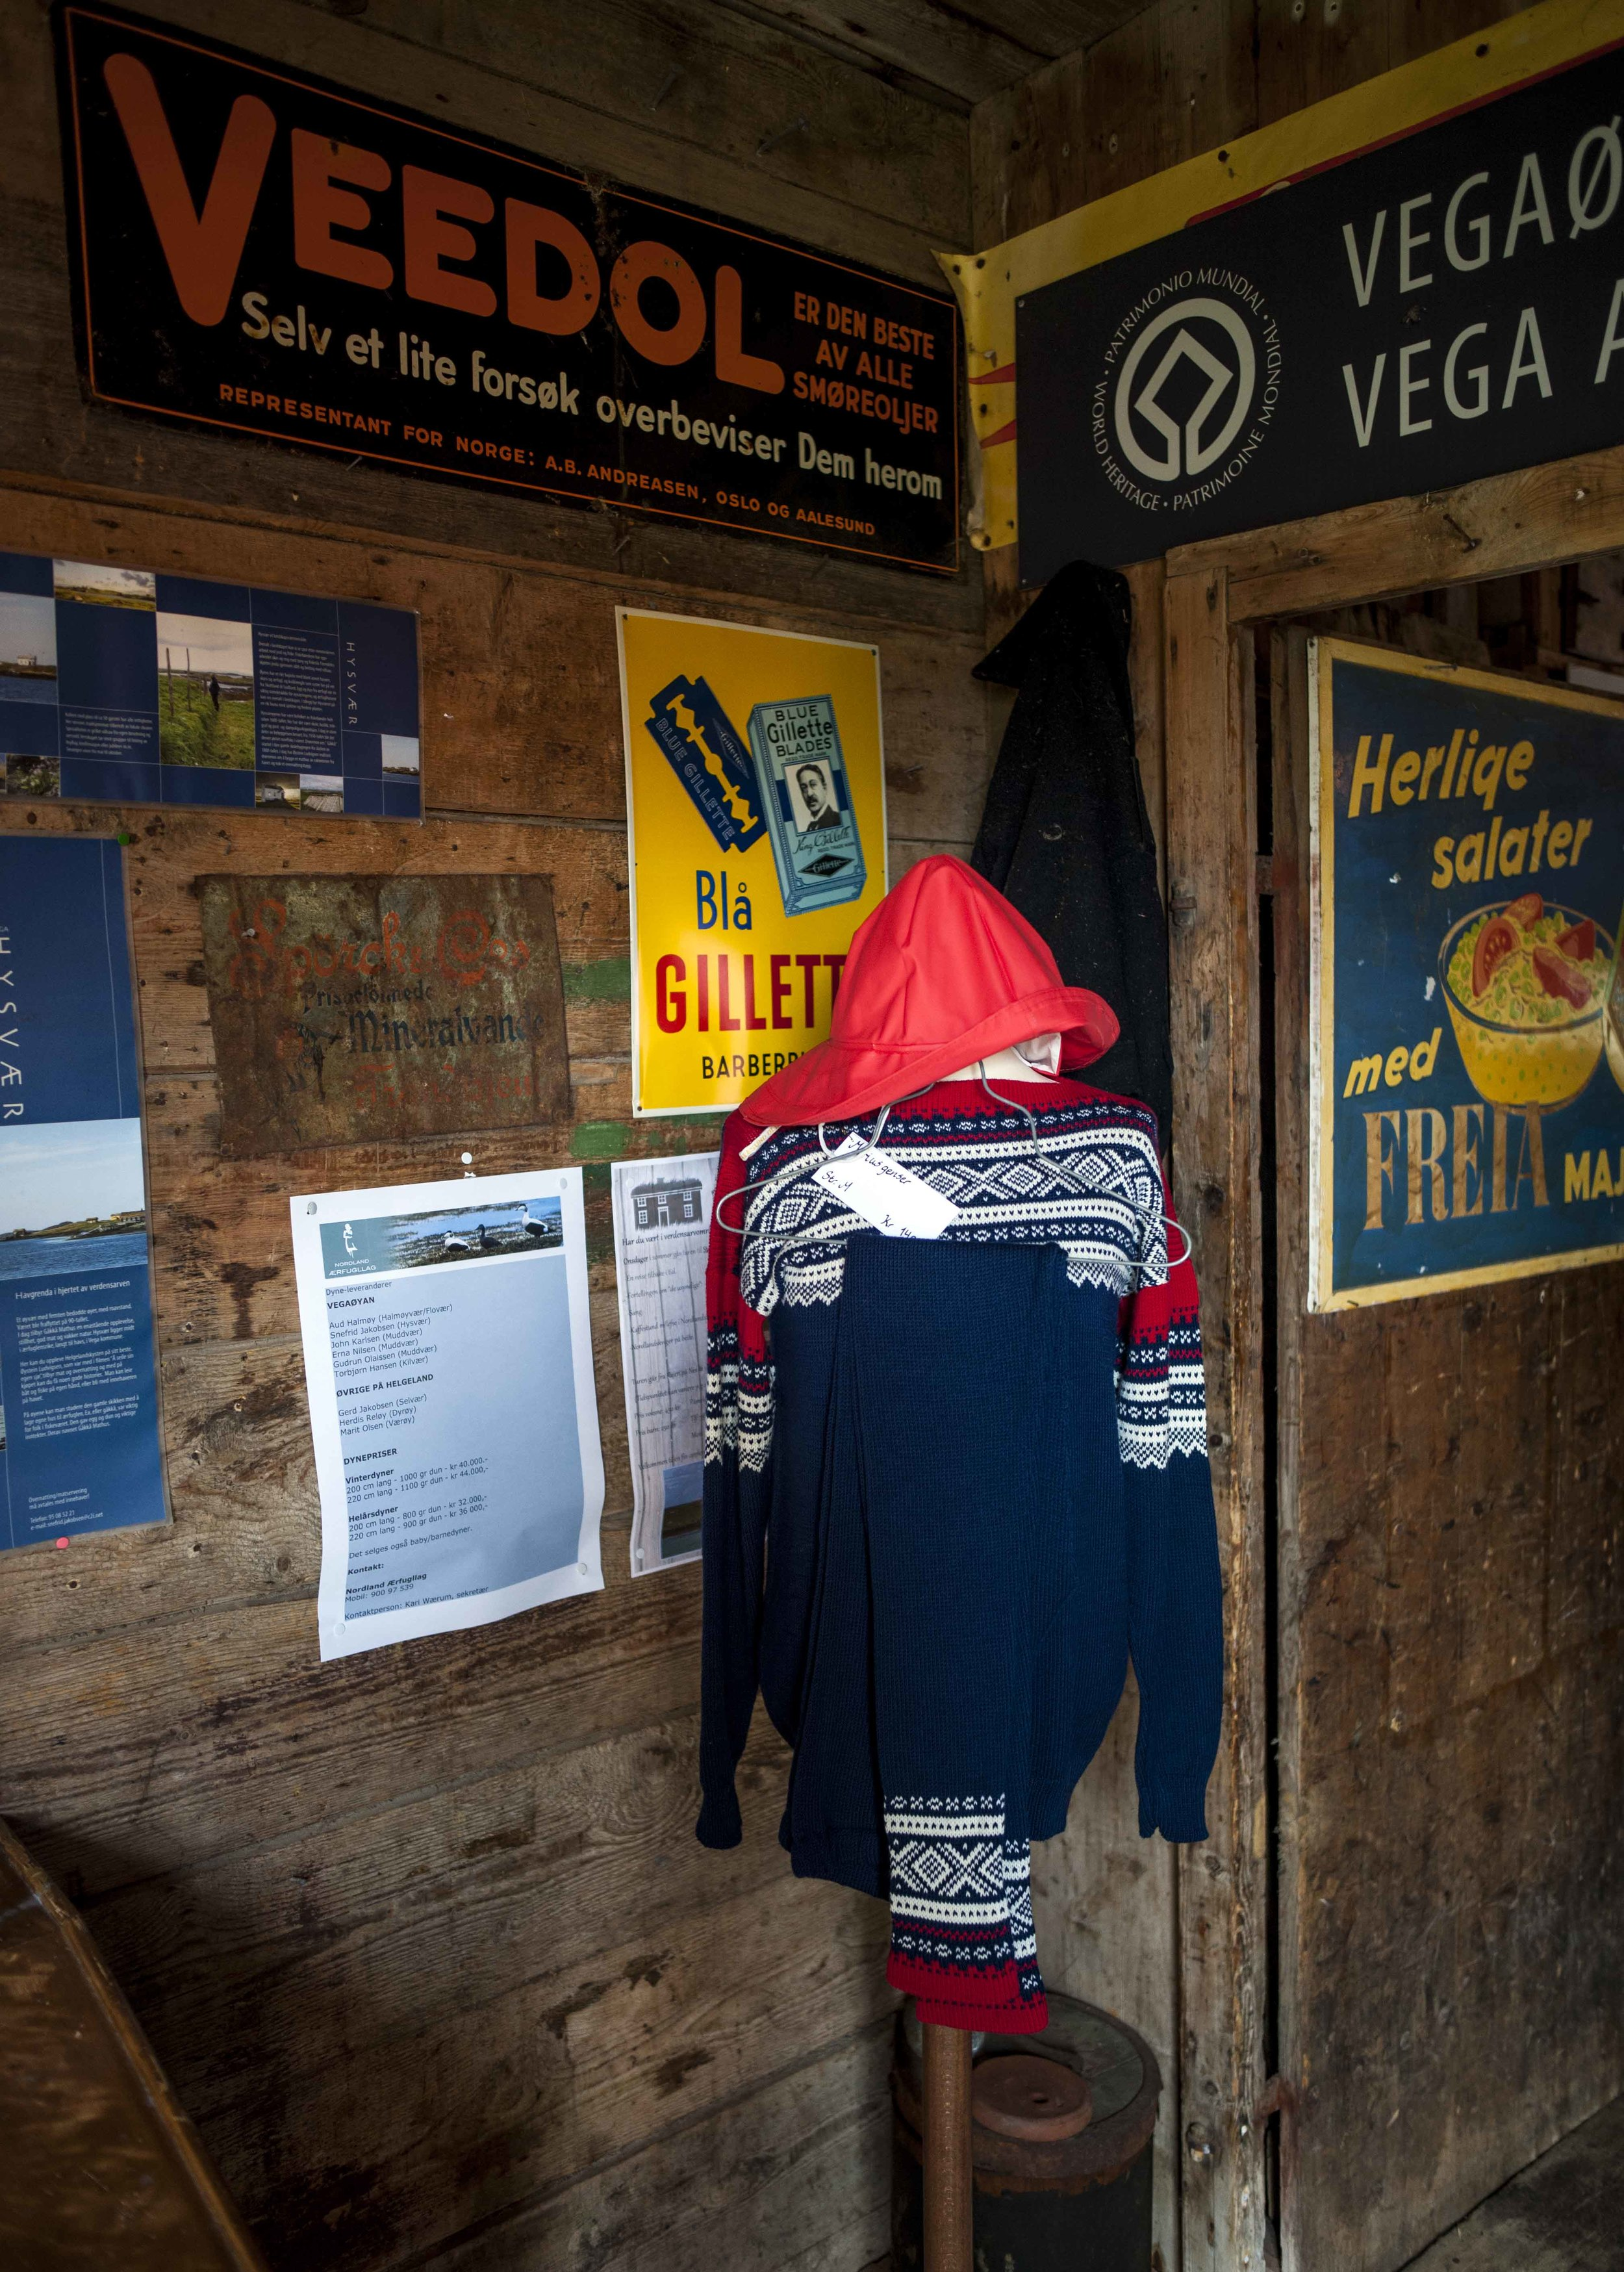 'Traditional' knitted jumper for sale in E-huset museum on Vega